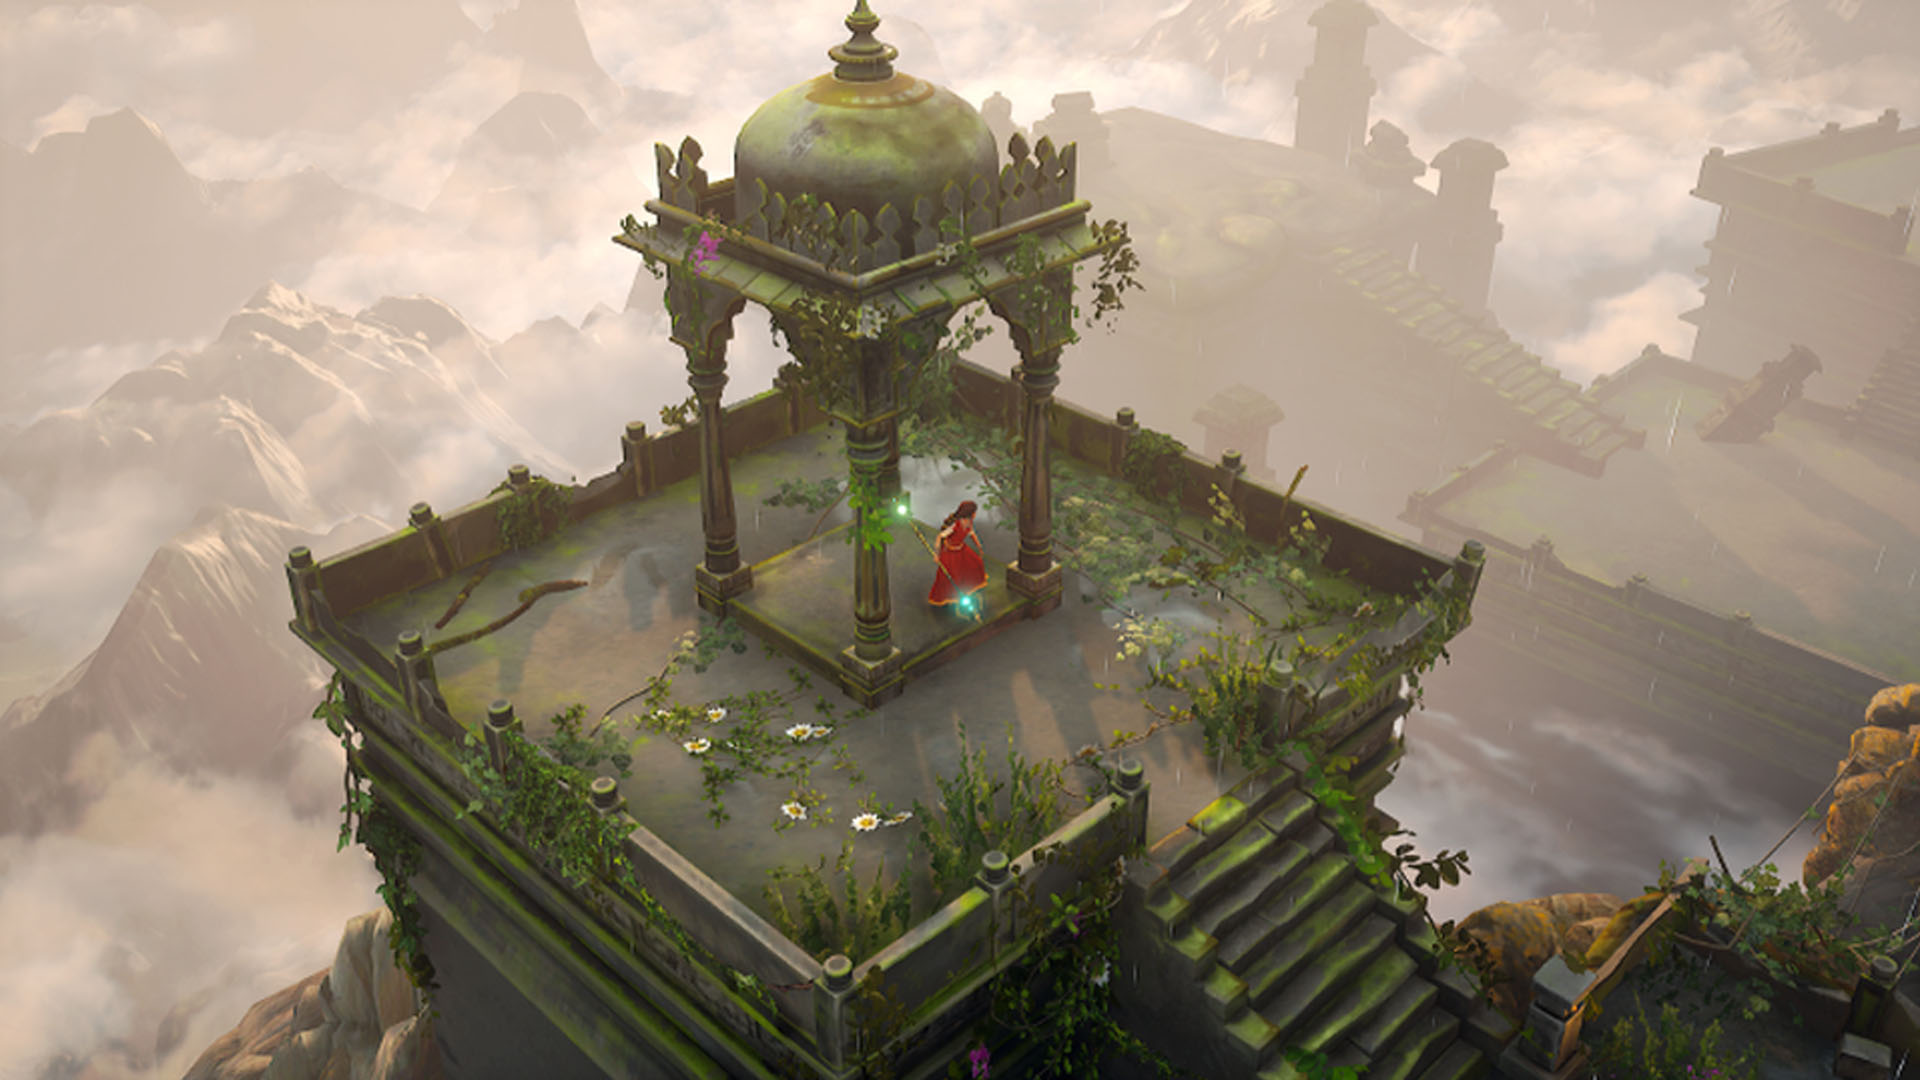 Making it in Unreal: action-adventure goes to India in Raji: An Ancient Epic